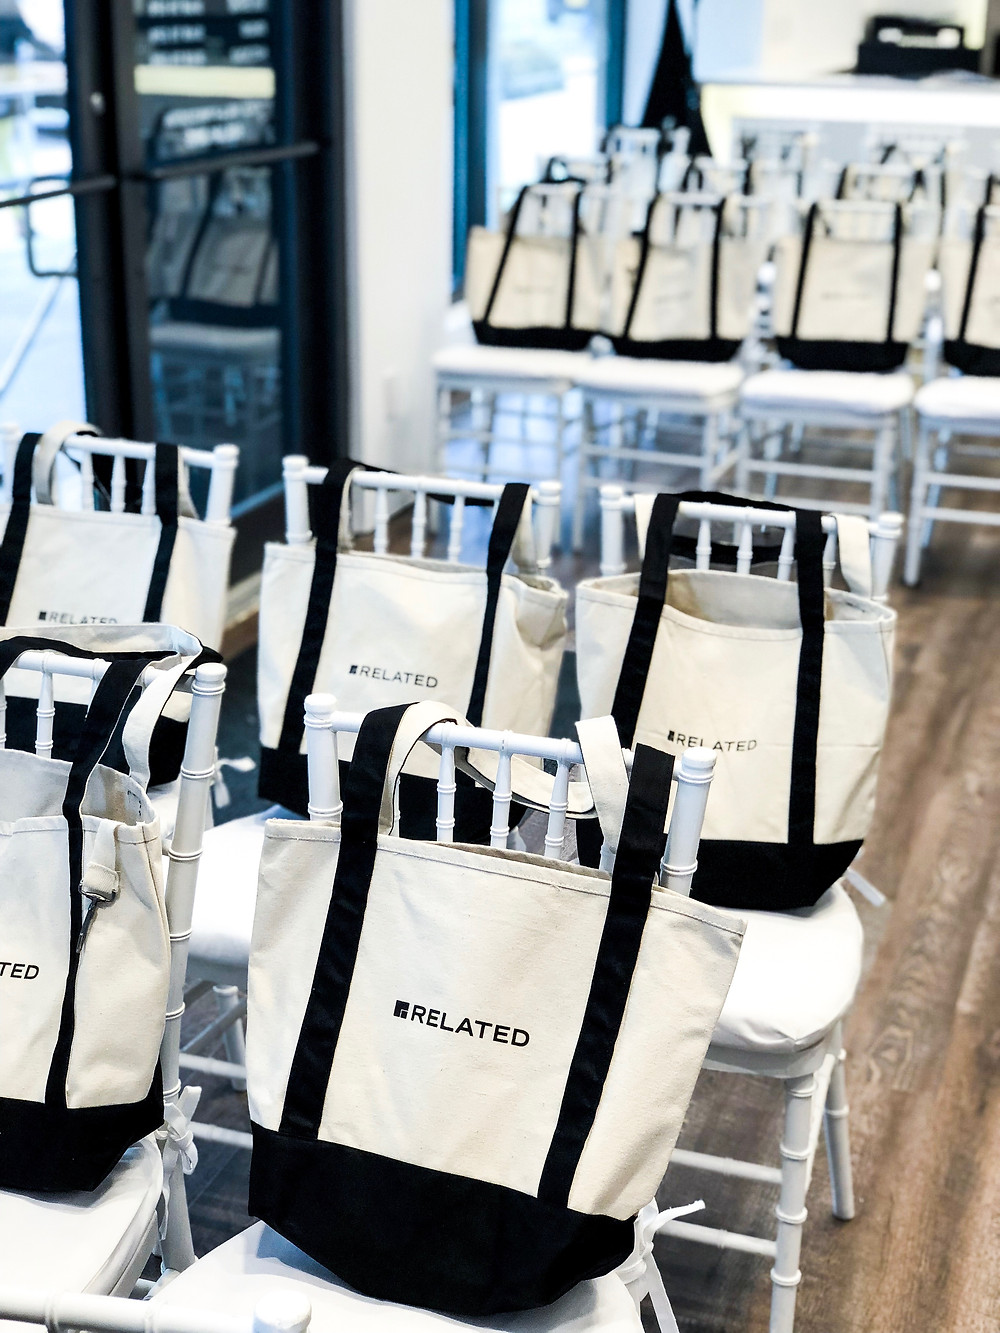 bags placed on event chairs